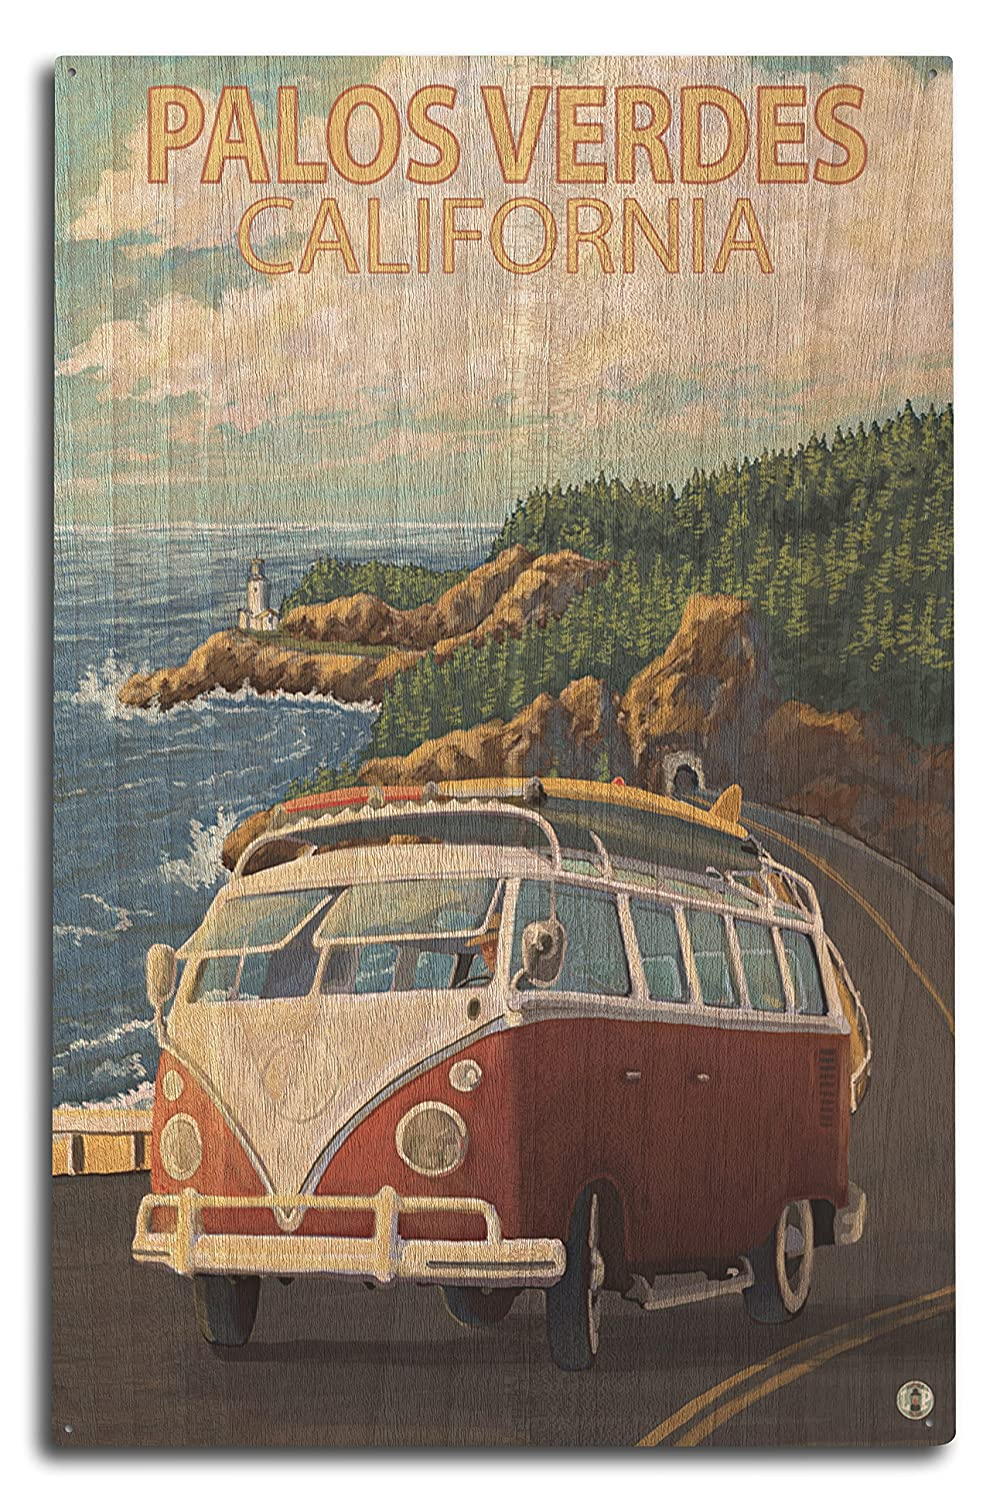 新規購入 Palos 10 Verdes、カリフォルニア – Sign VW Van 9 Sign x 12 Art Print LANT-46350-9x12 B07367KHFJ 10 x 15 Wood Sign 10 x 15 Wood Sign, 礼服レンタルの相羽:595c05d1 --- granjalailusion.com.ar